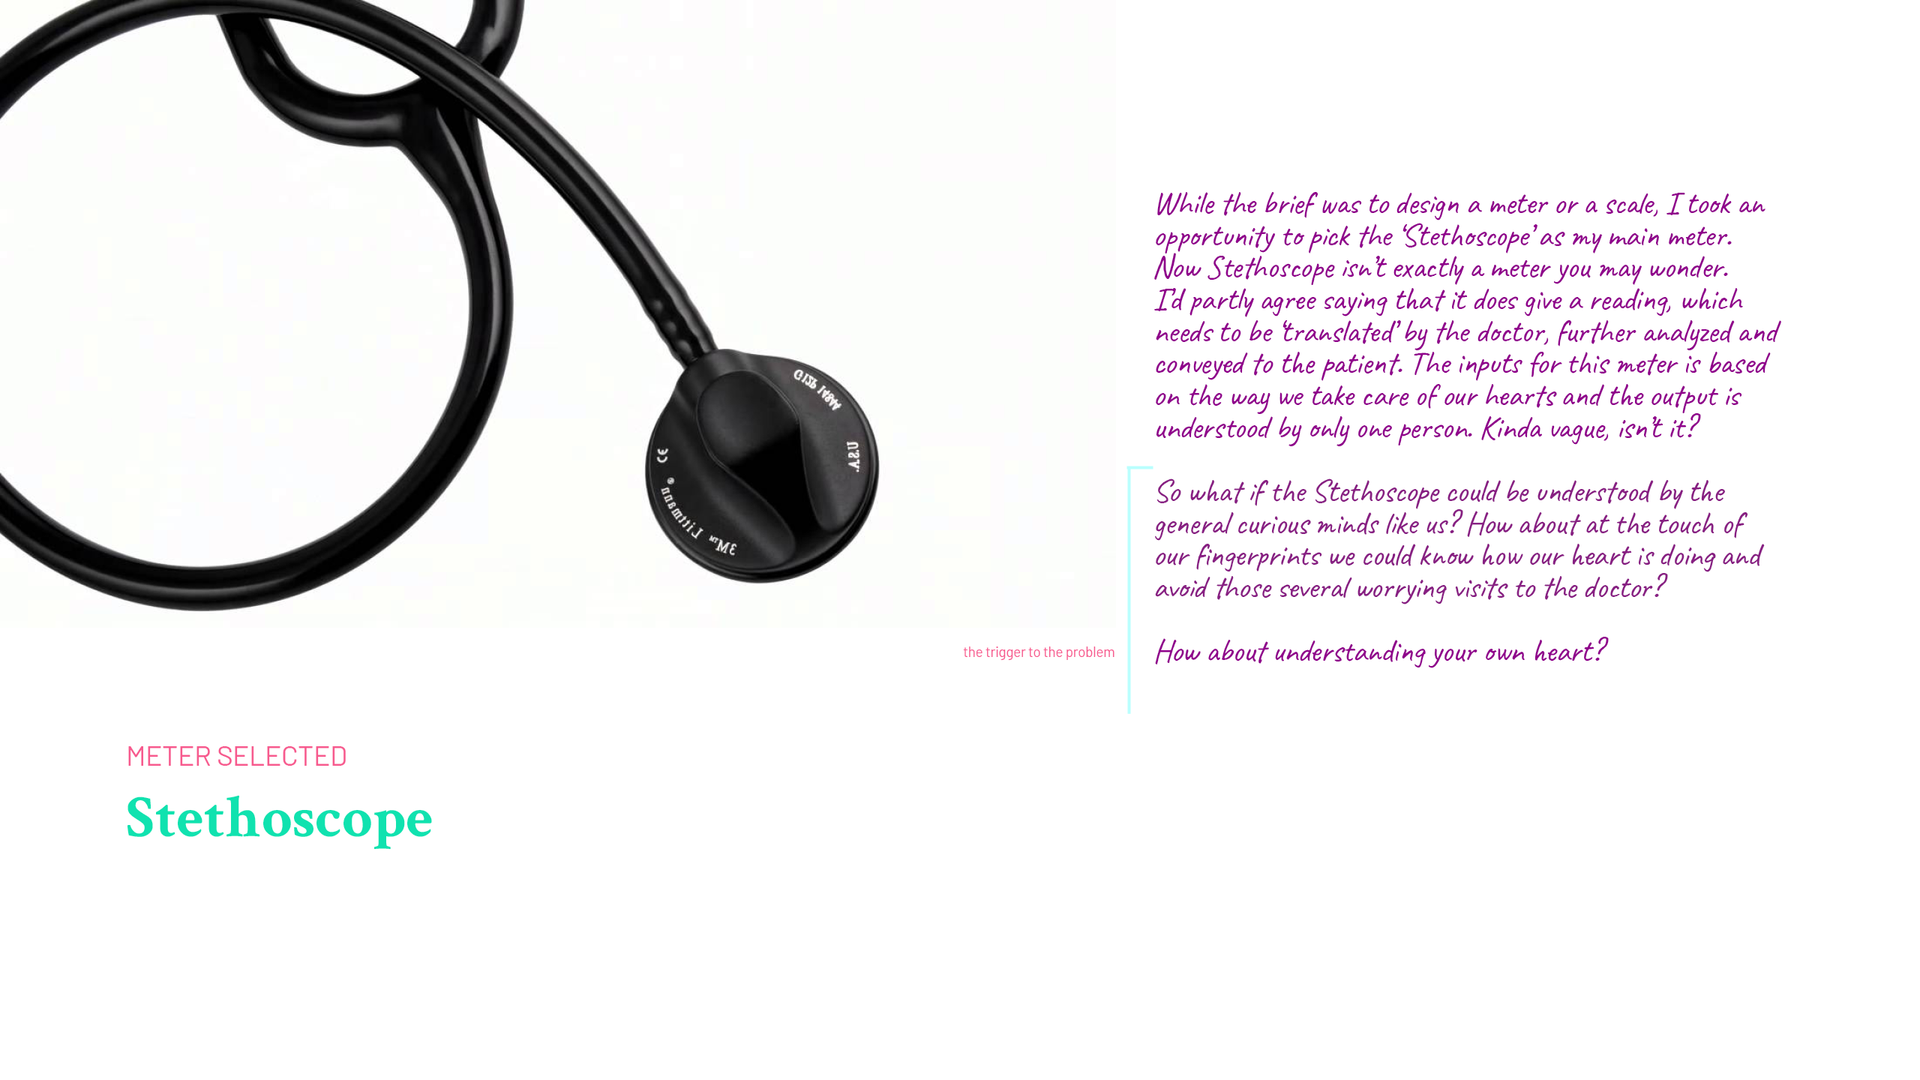 Stethoscope-Meter3.png